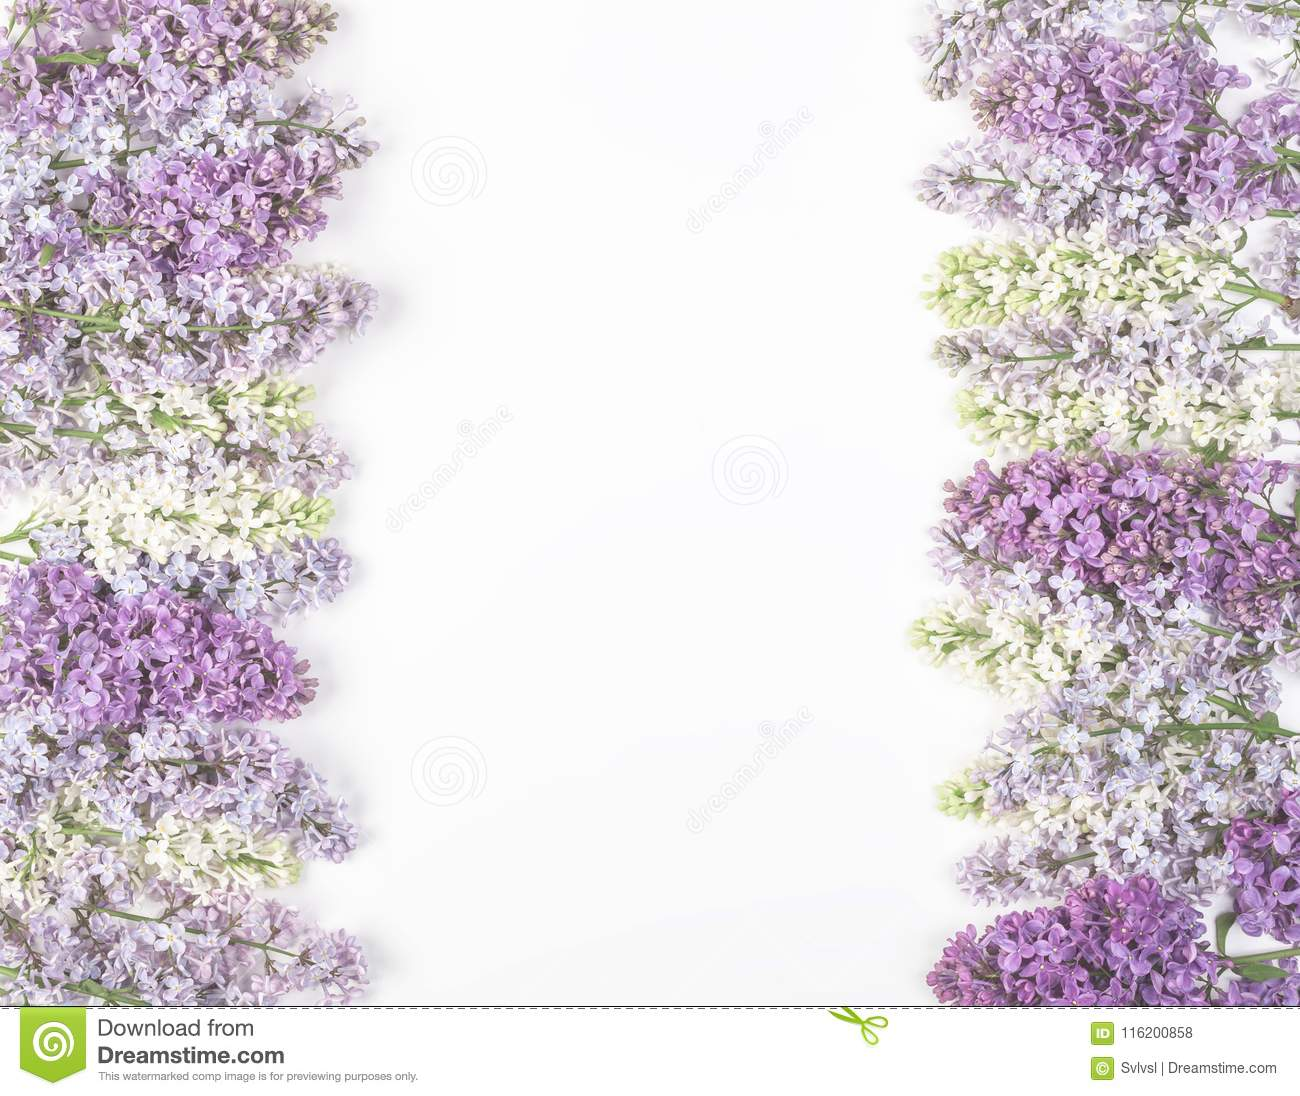 Floral frame made of spring lilac flowers isolated on white background. Top view with copy space.